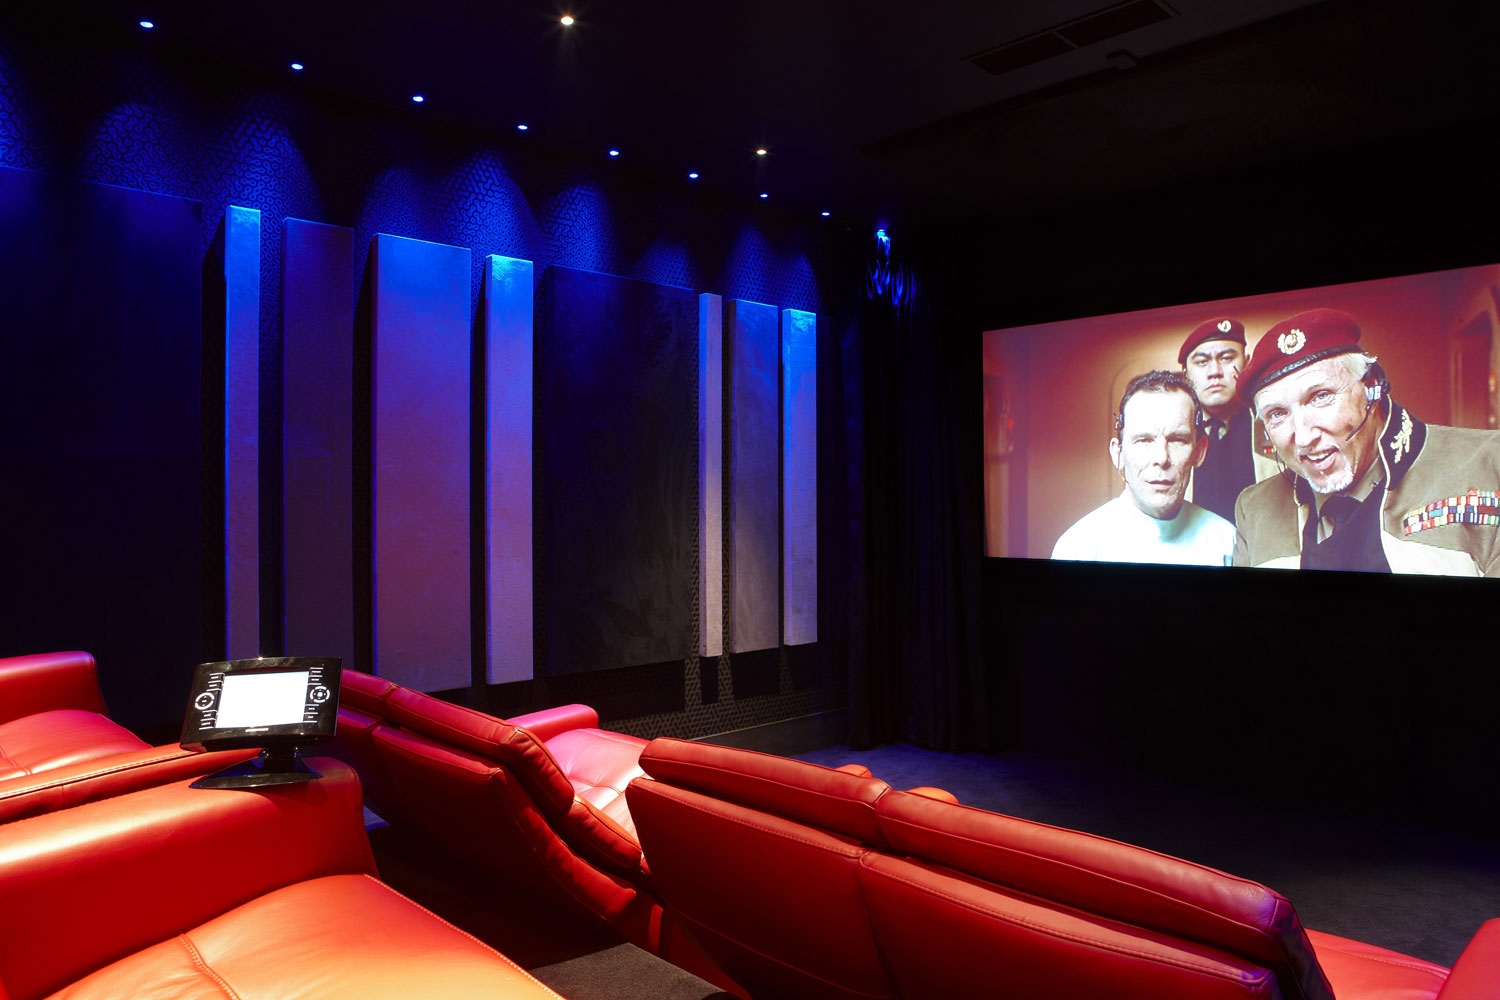 Private Residence Cinema Room, Northwood, London |Residential Photographer